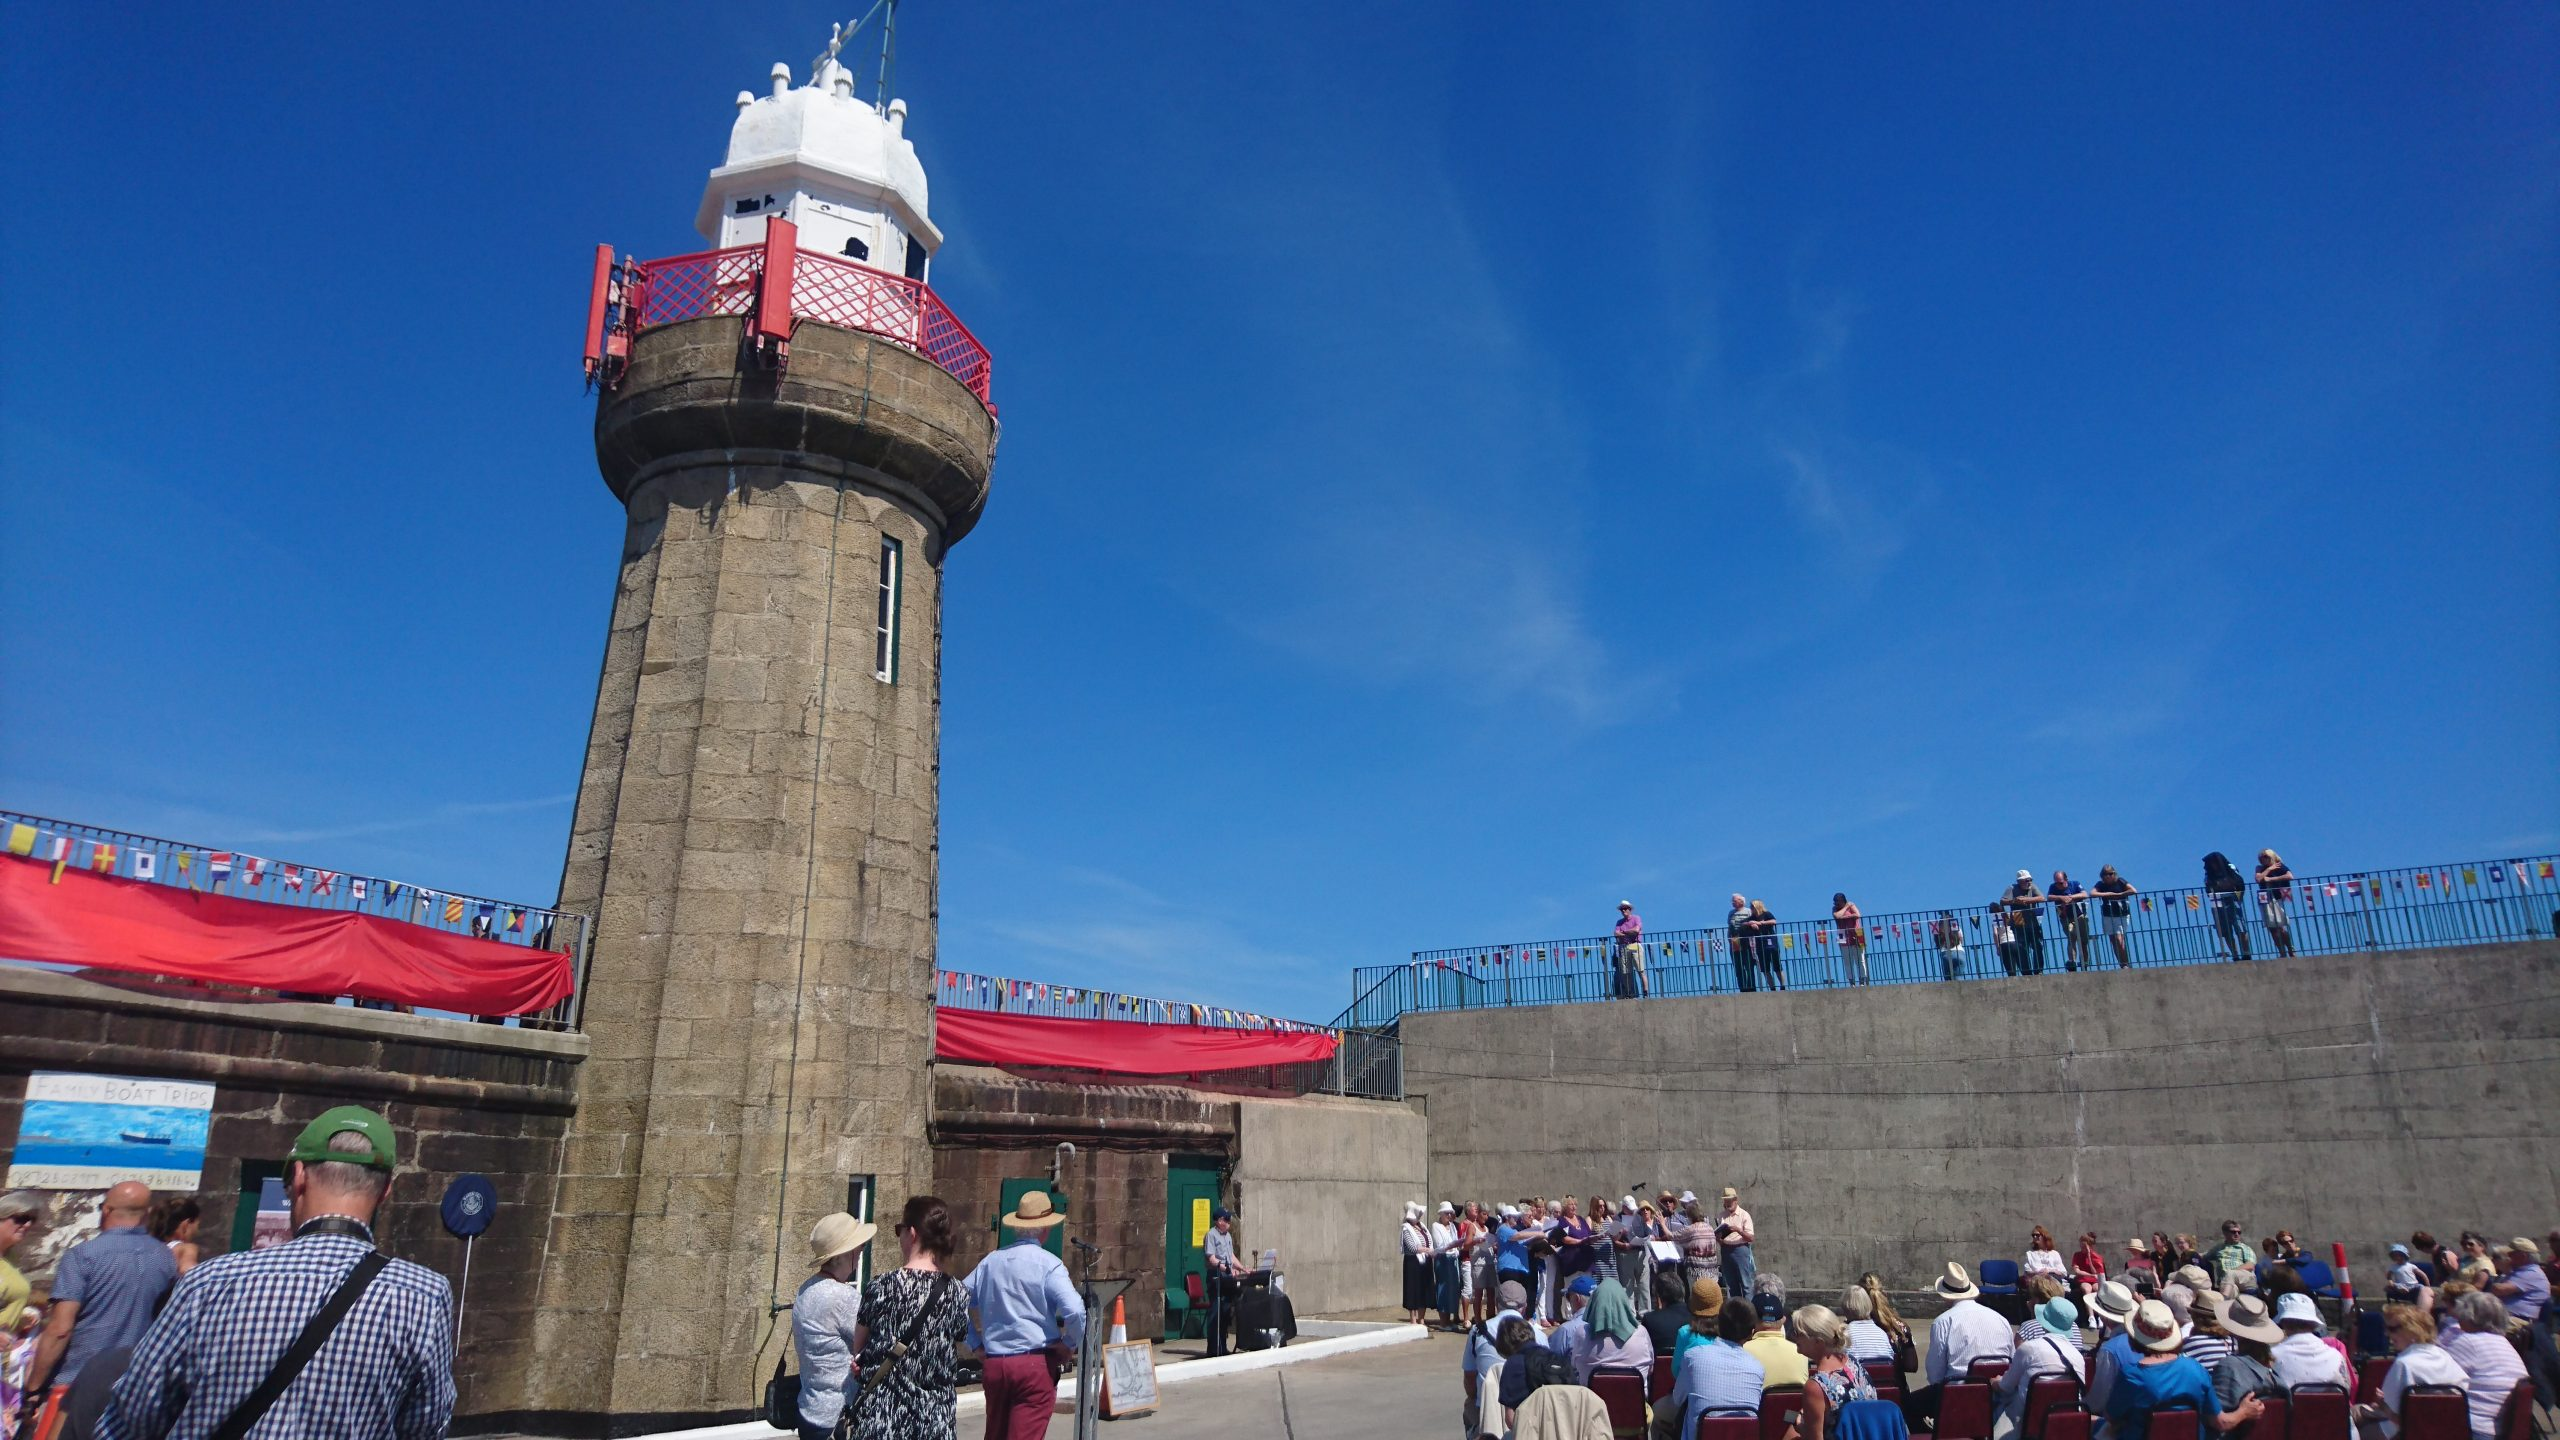 200 years of the harbour in Dunmore East were celebrated at the seaside village yesterday.